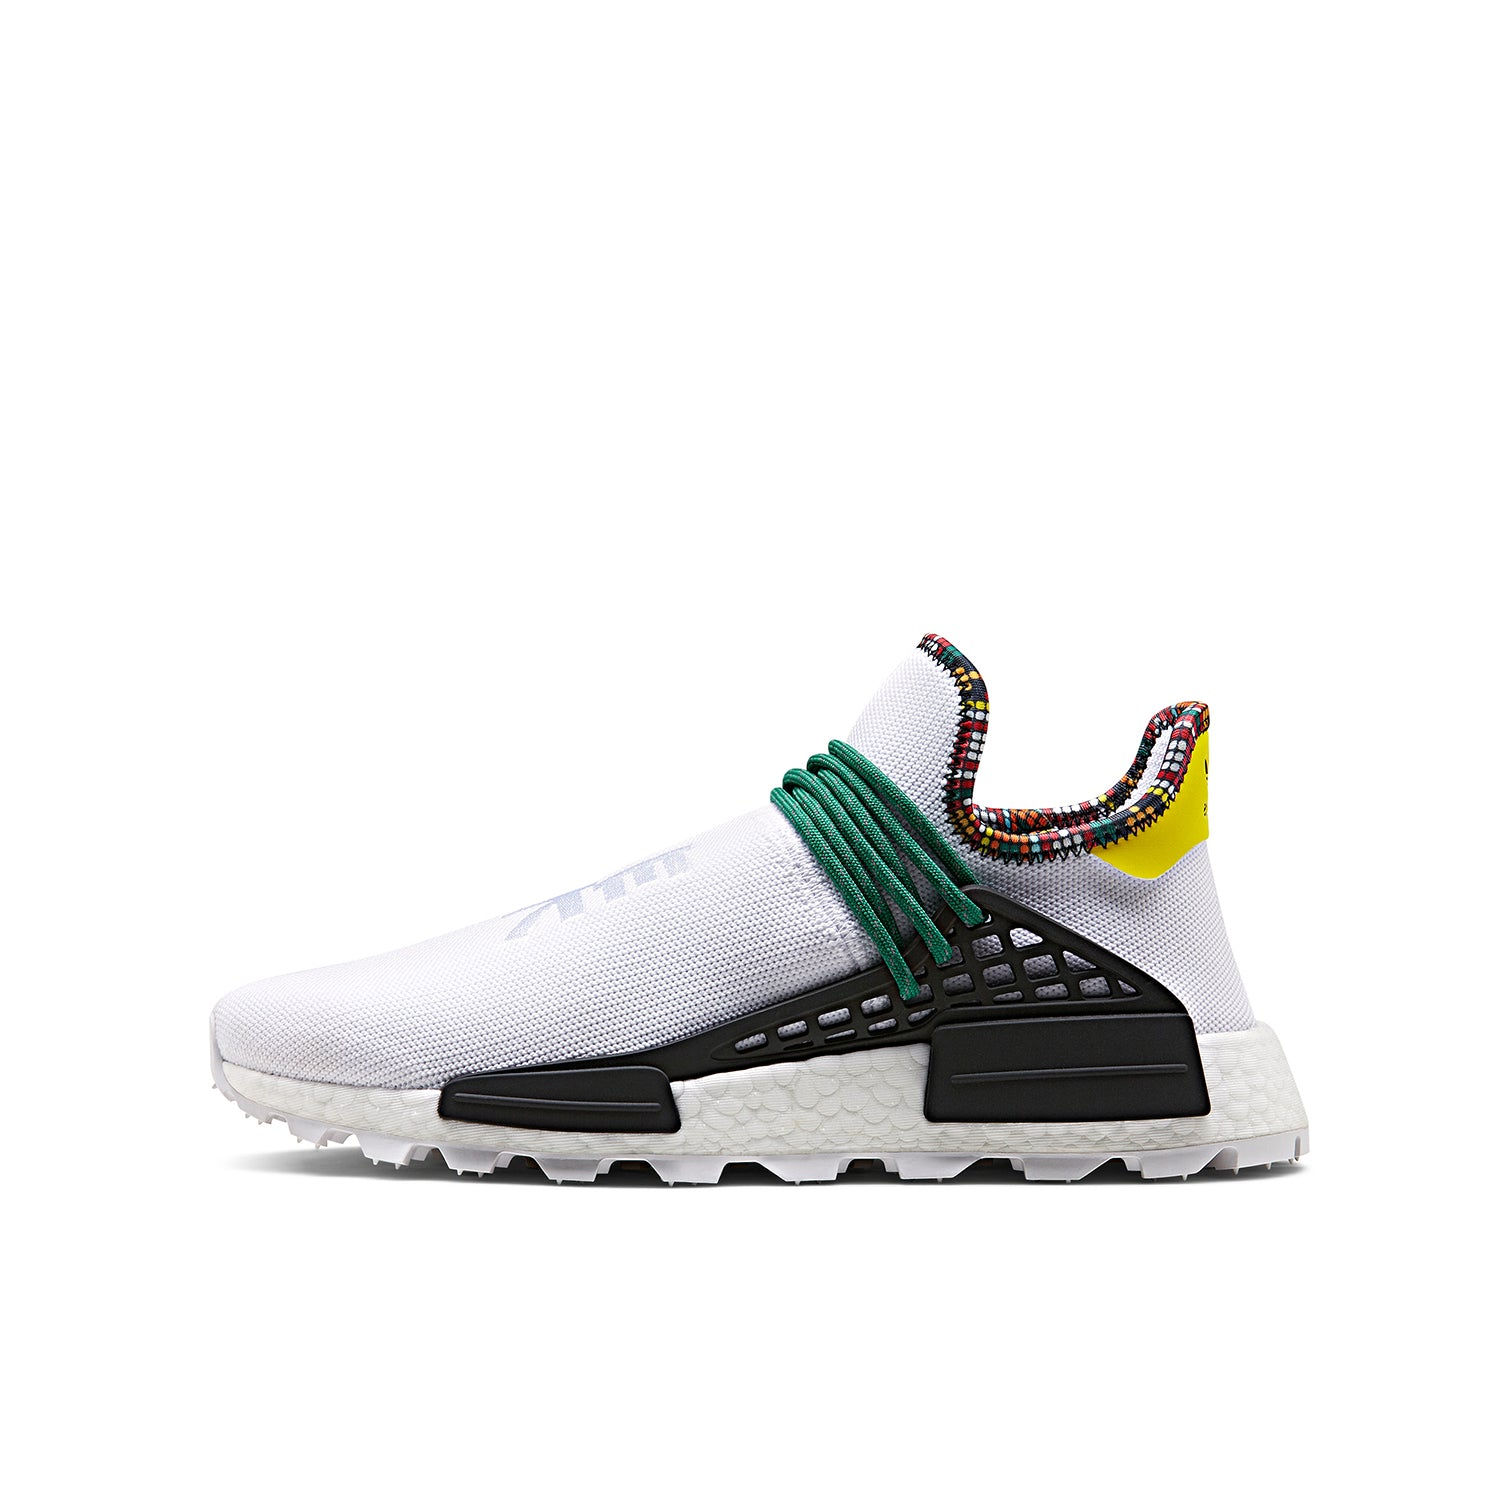 1339d1071e81 adidas Originals x Pharrell Williams  INSPIRATION  Solar HU NMD White. Tap  to expand